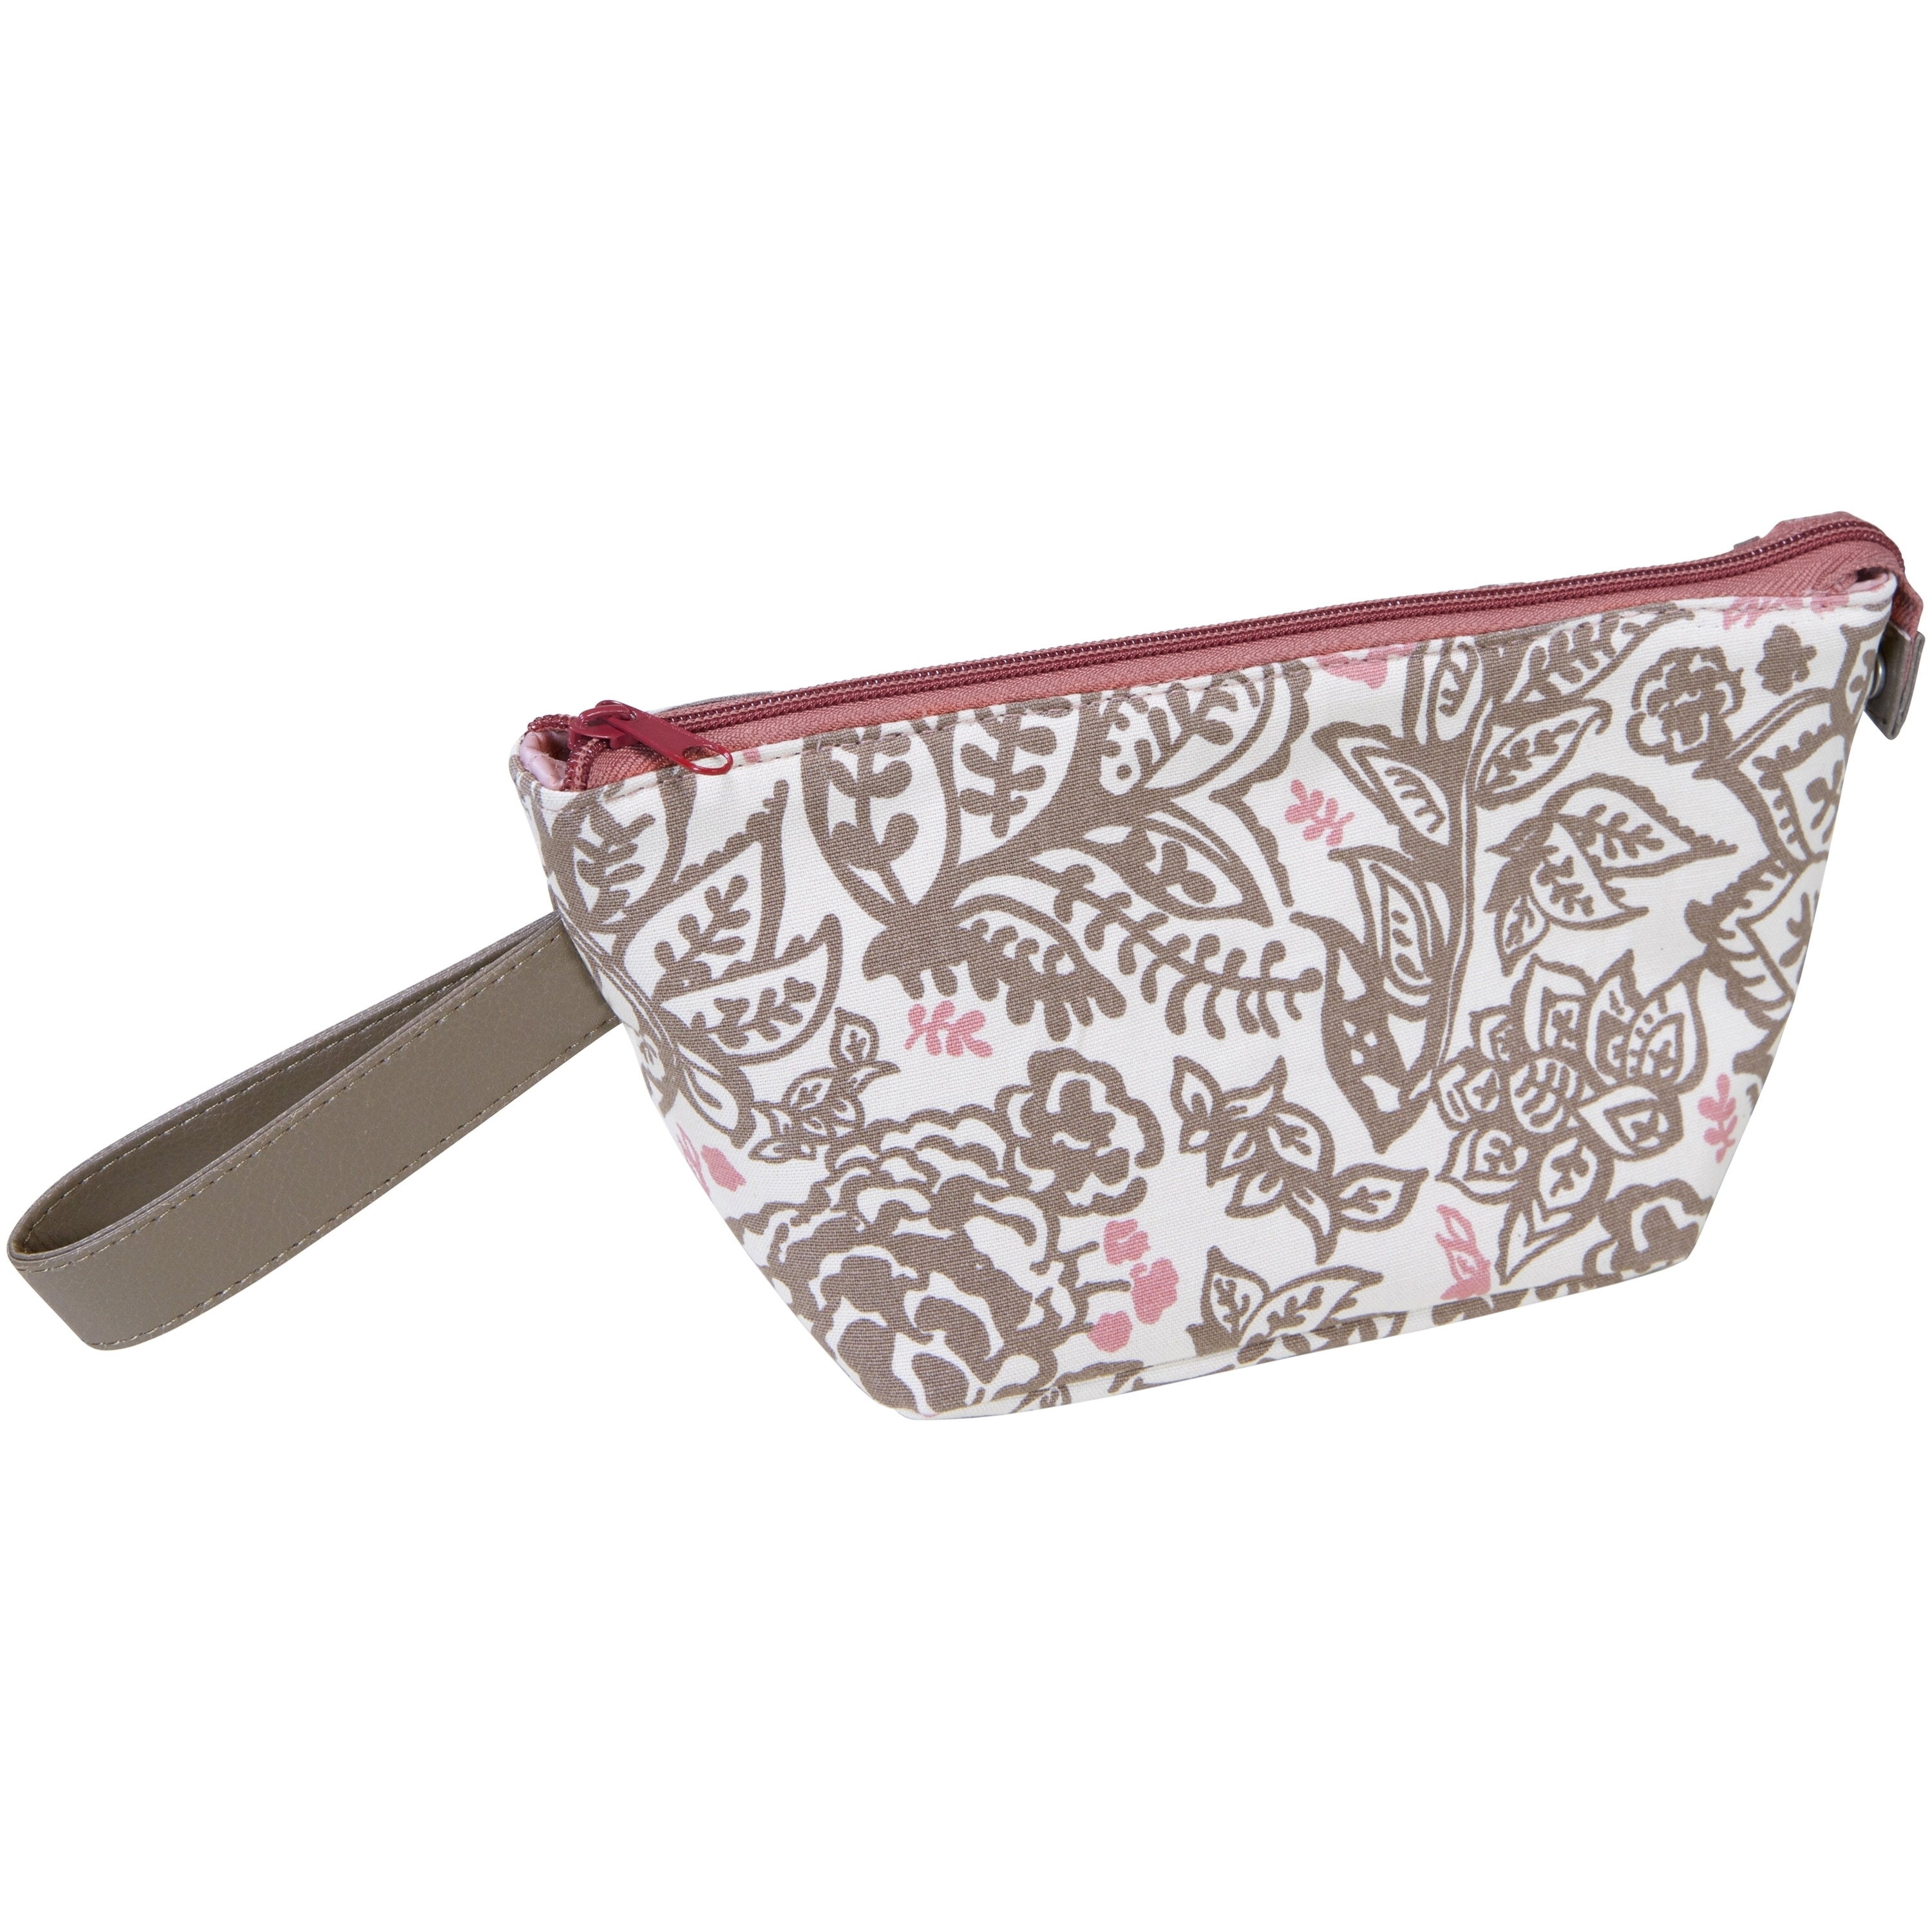 Kathy Ireland Loved Ones Collapsible Pet Travel Bowl-Pink...